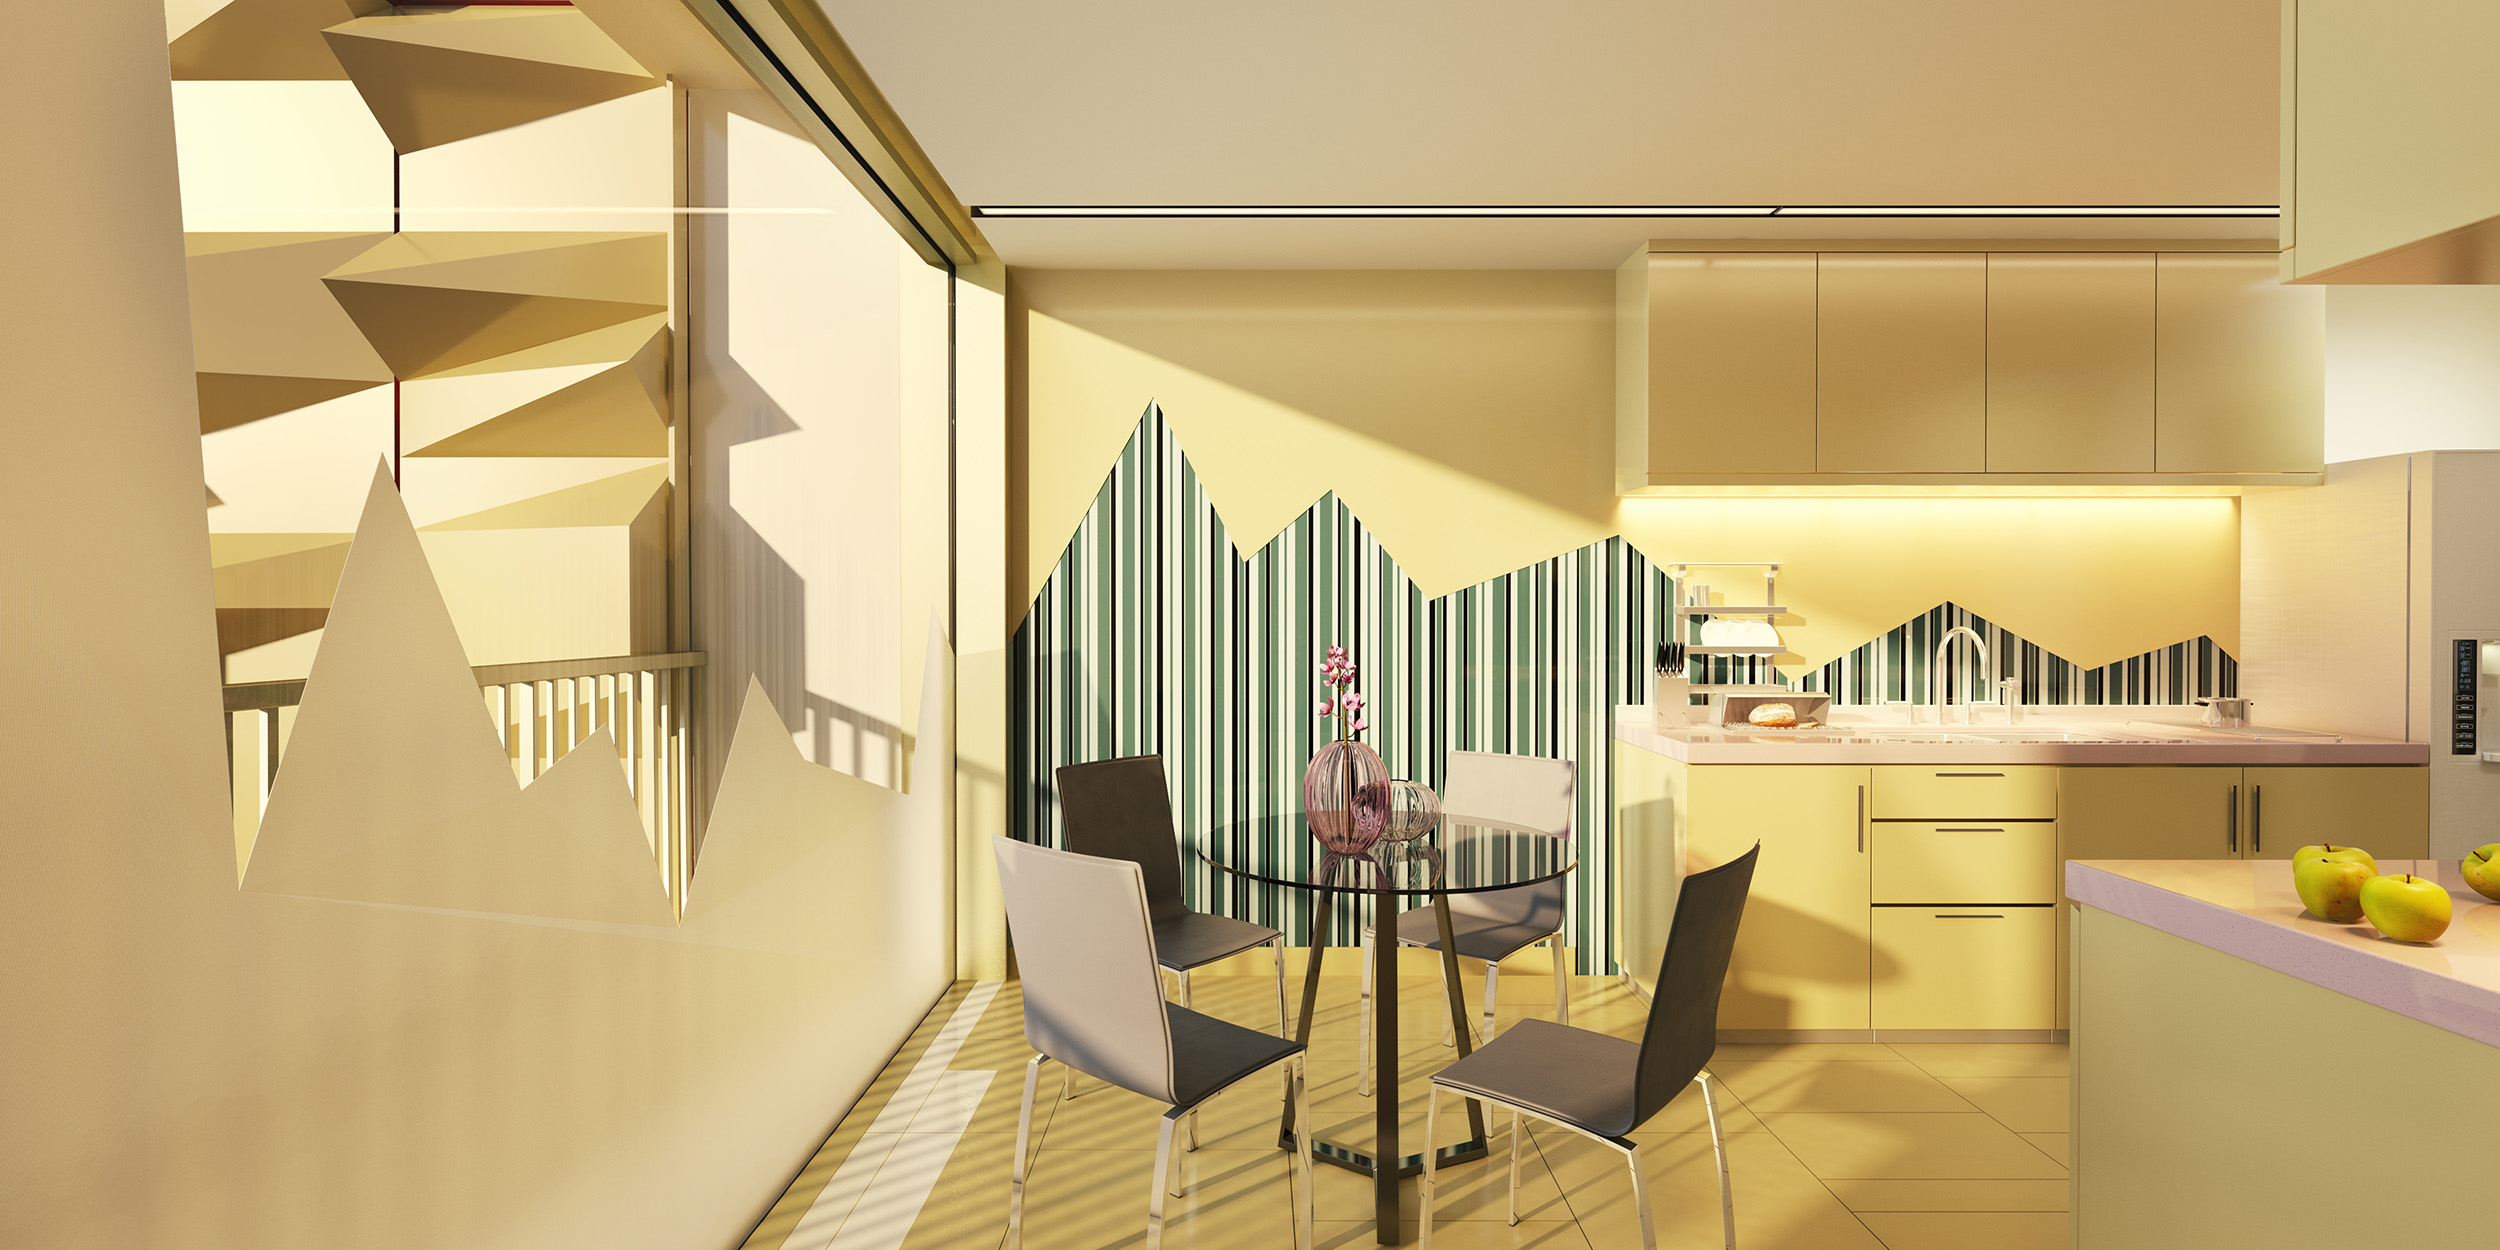 Appartment hotel- advertising project, no location